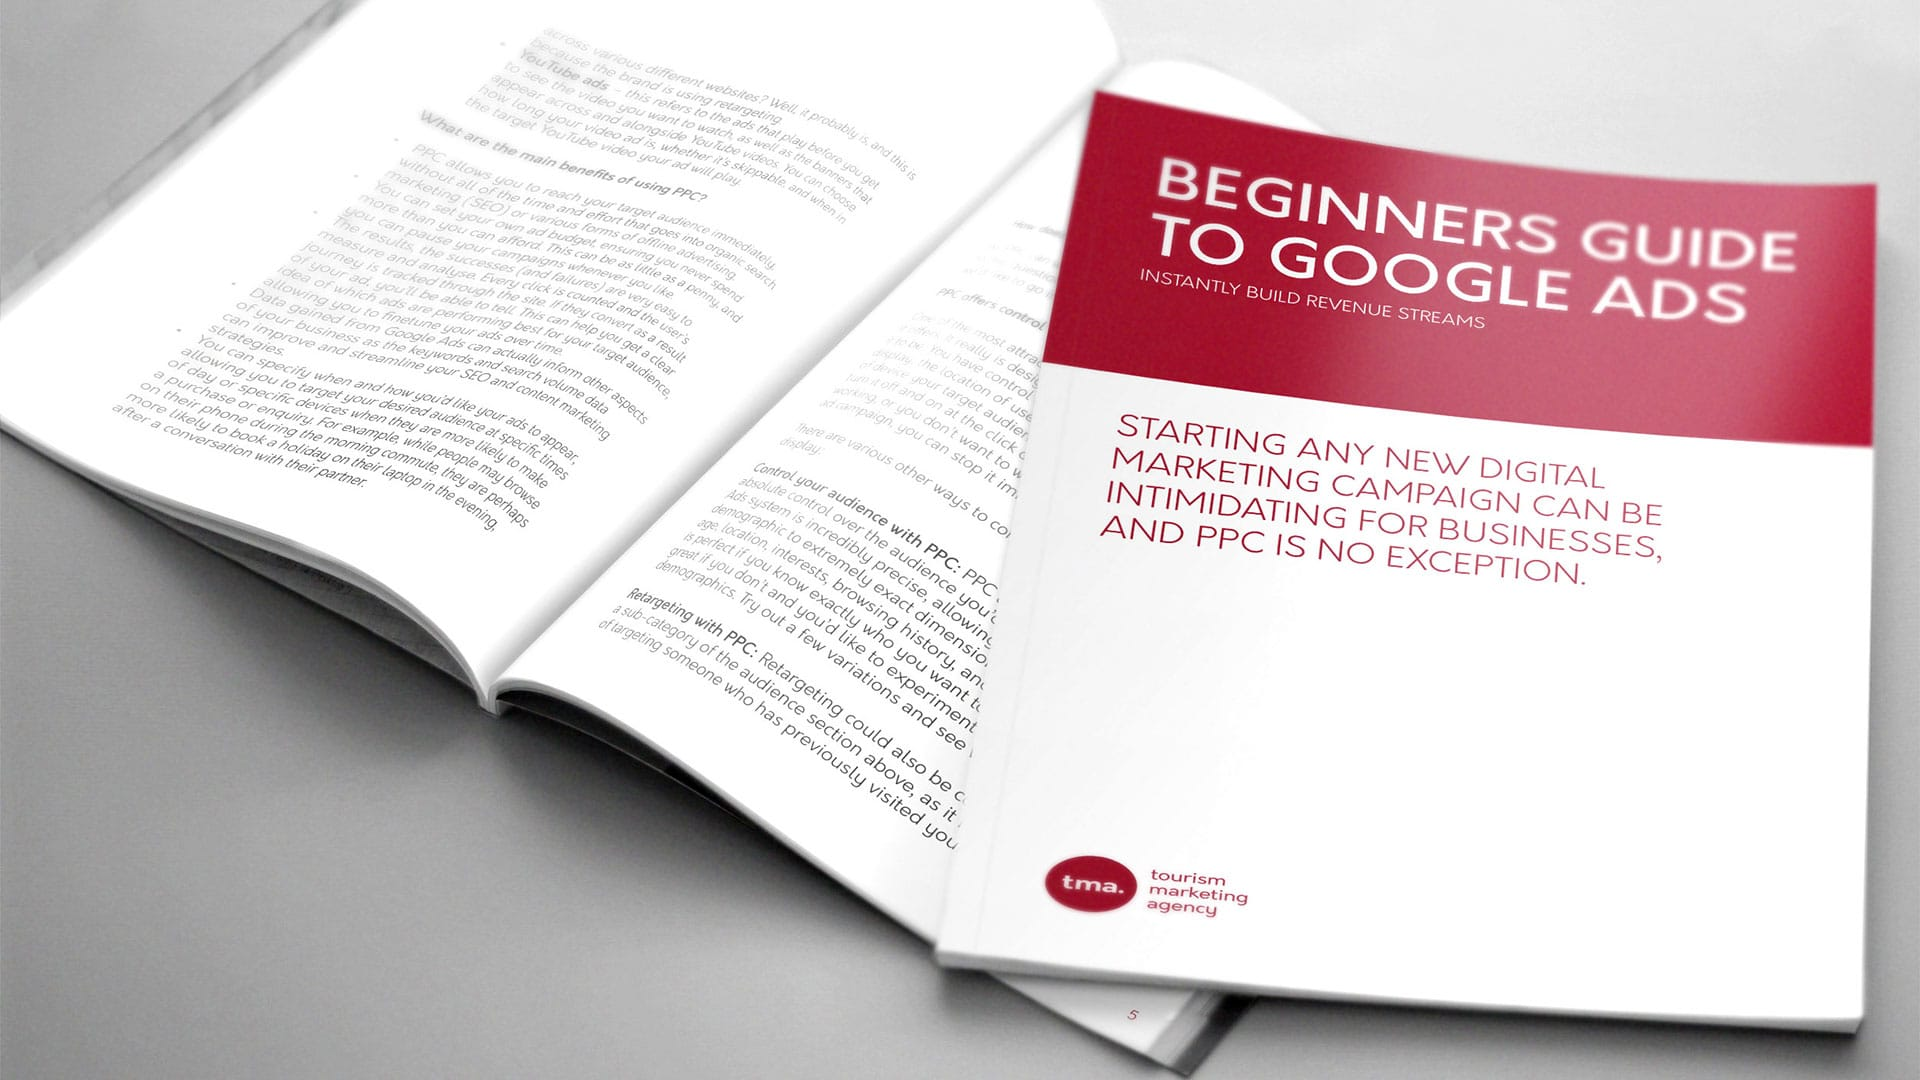 """Booklet Titled the """"Beginners Guide to Google Ads"""" from the Tourism Marketing Agency"""